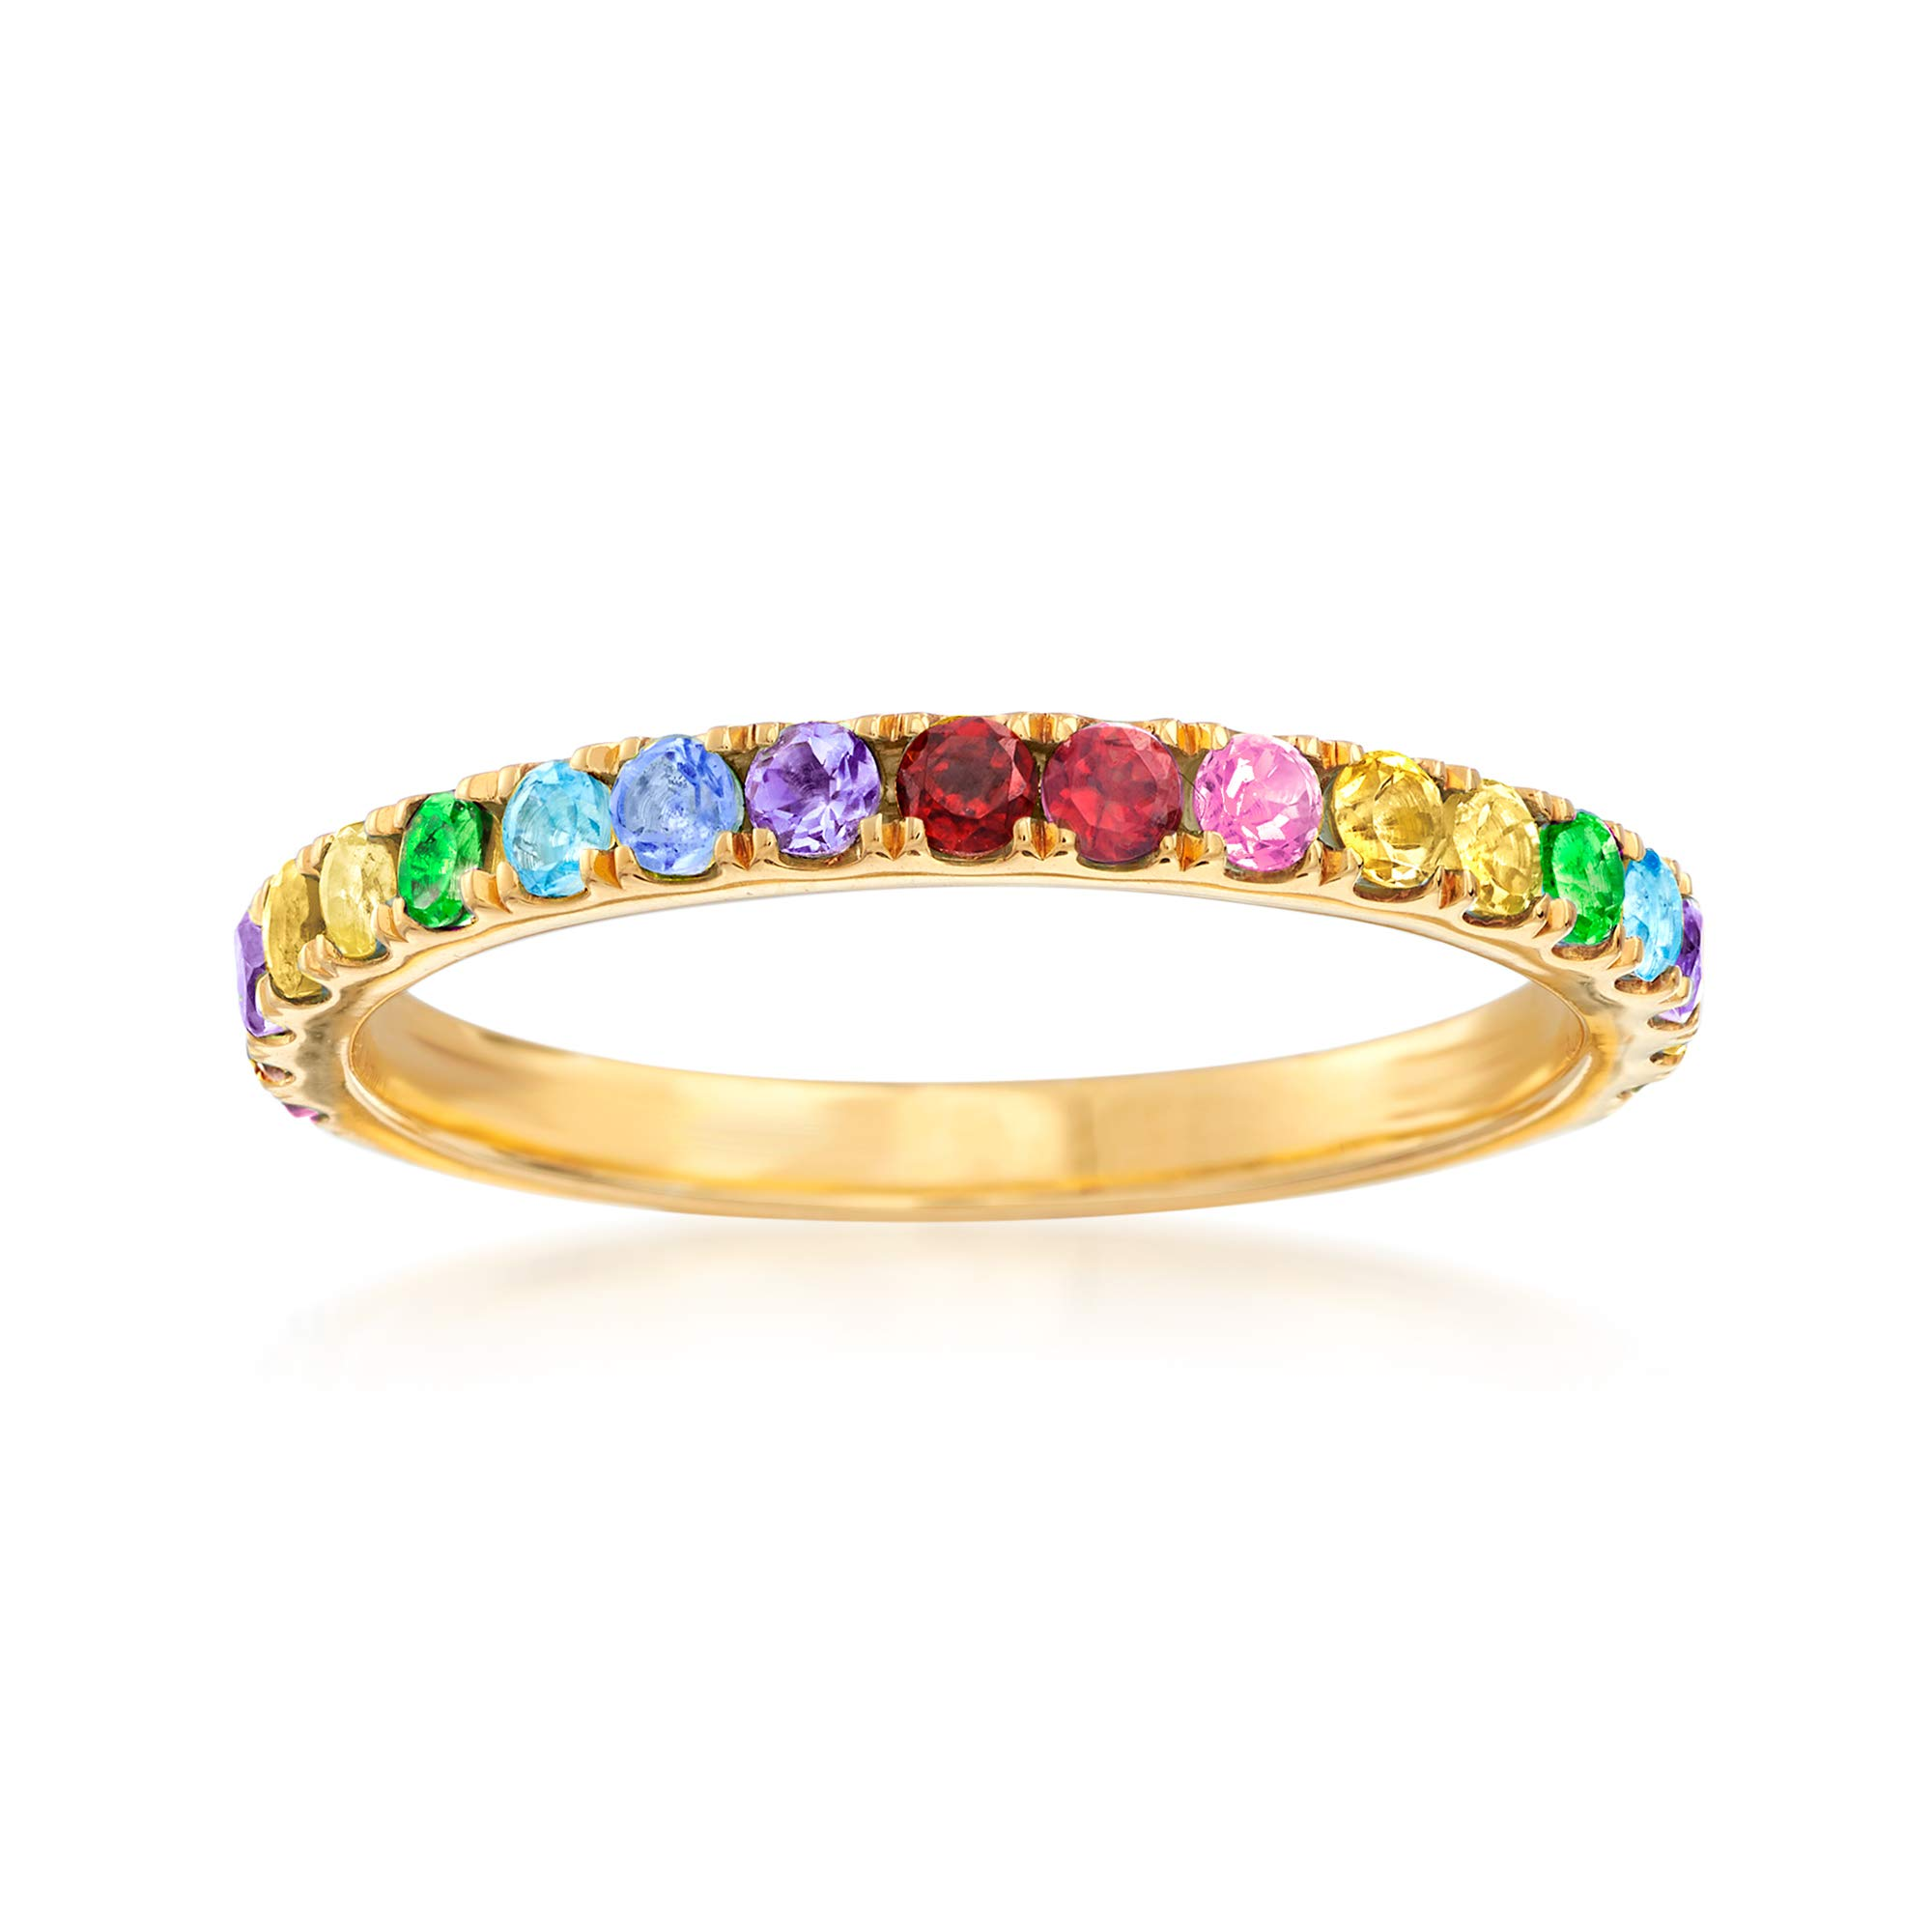 Ross-Simons .64 ct. t.w. Multi-Gemstone Rainbow Ring in 18kt Gold Over Sterling